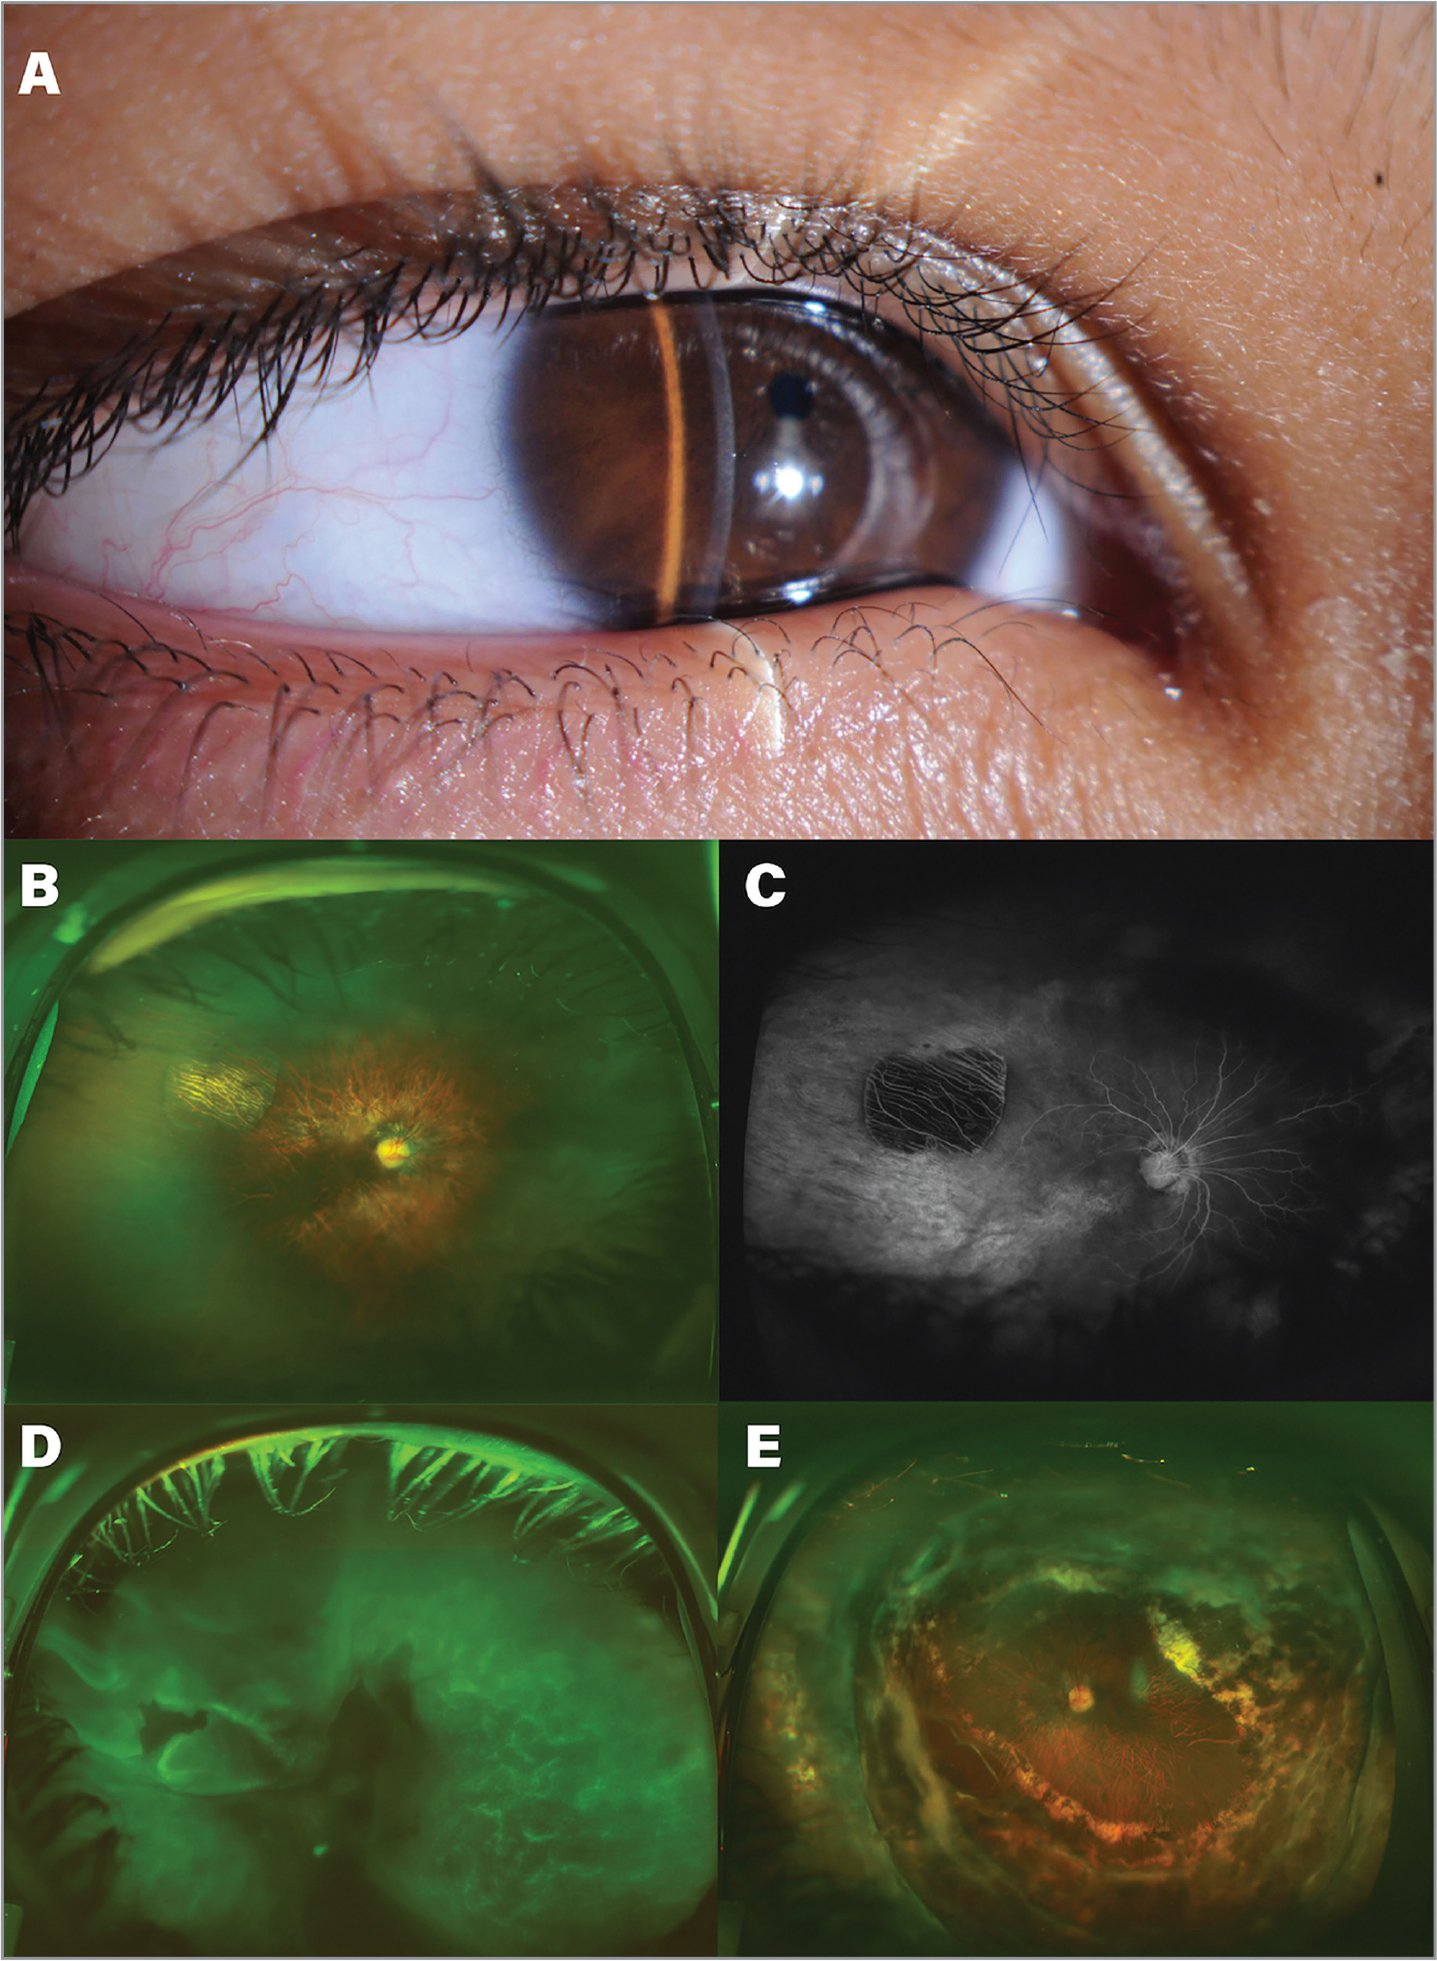 Anterior segment and retinal features of an 8-year-old female (Patient 1) with Pierson syndrome. (A) Anterior segment photograph showing microcoria. (B) Right eye fundus photograph showing a tessellated fundus, optic disc pallor with unidentifiable cup, abnormal retinal vascular emanation, and parapapillary atrophy. A supero-temporal punched-out chorioretinal atrophy, avascular peripheral retina, aberrant course of temporal arcades, and straightening of nasal retinal vessels are also seen. (C) Right eye fluorescein angiography showing the lack of retinal perfusion beyond the macula temporally without a distinct vascularavascular junction. (D) Left eye fundus photograph showing total rhegmatogenous retinal detachment. (E) Left eye fundus photograph showing attached retina after surgical repair.